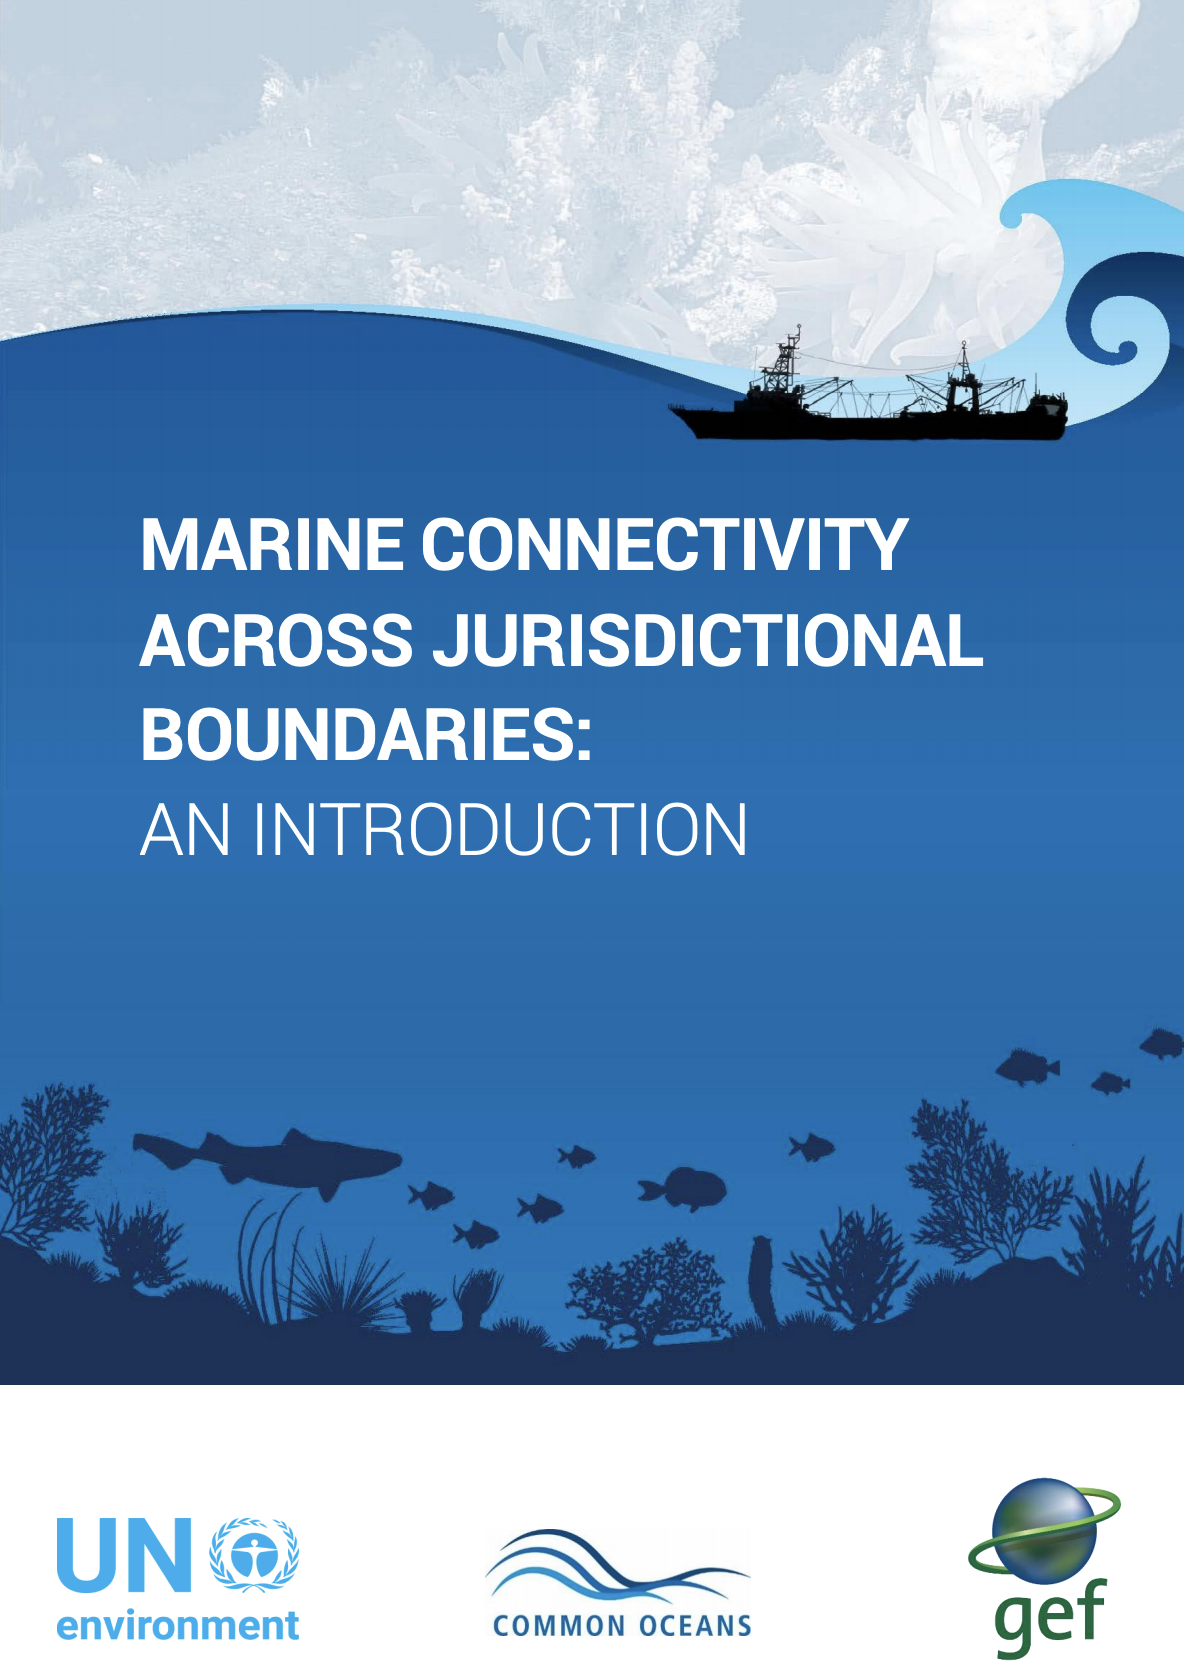 Marine connectivity across jurisdictional boundaries: an introduction